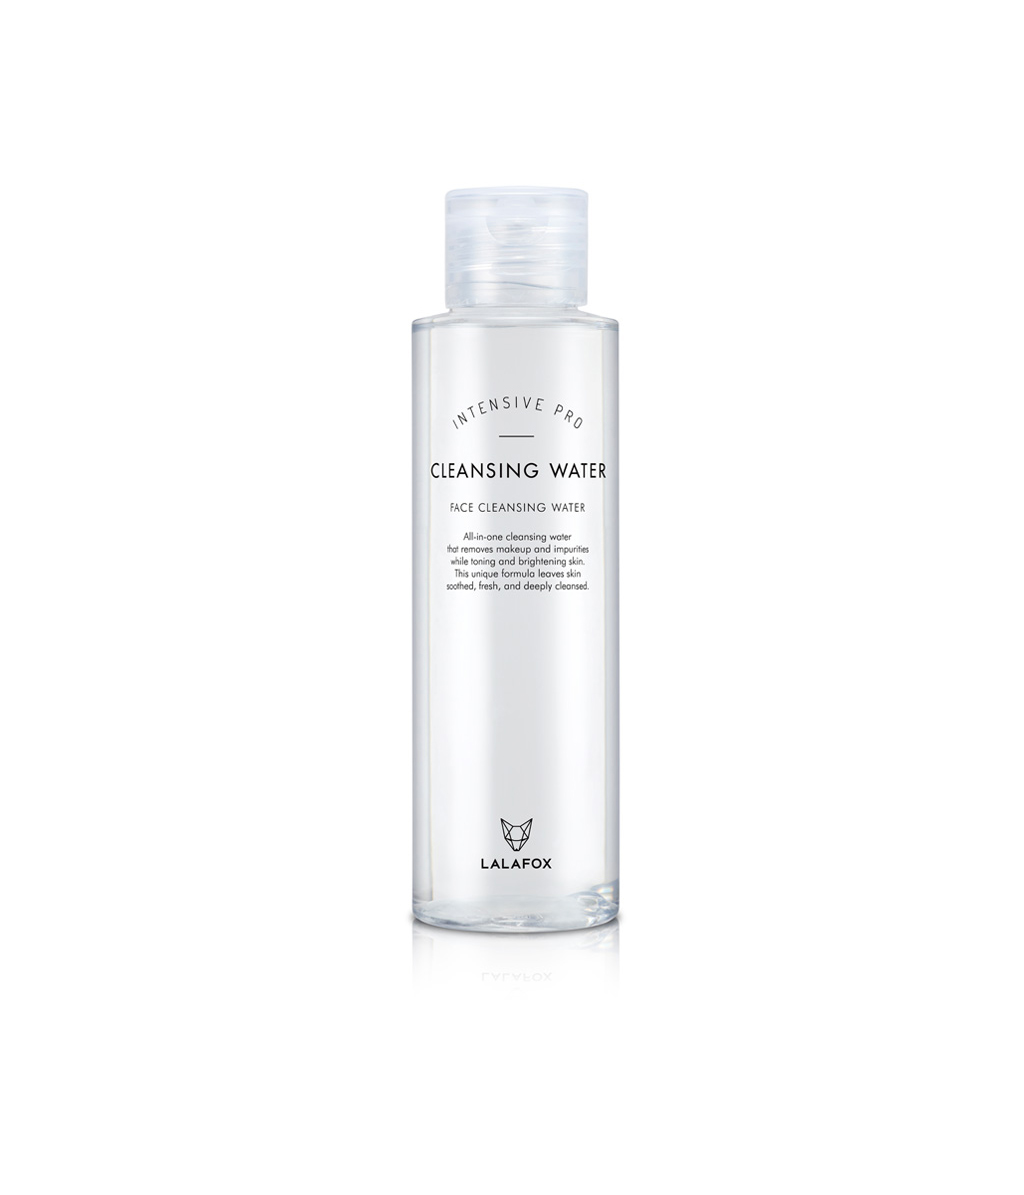 Tẩy trang LALAFOX Intensive Pro Cleansing Water